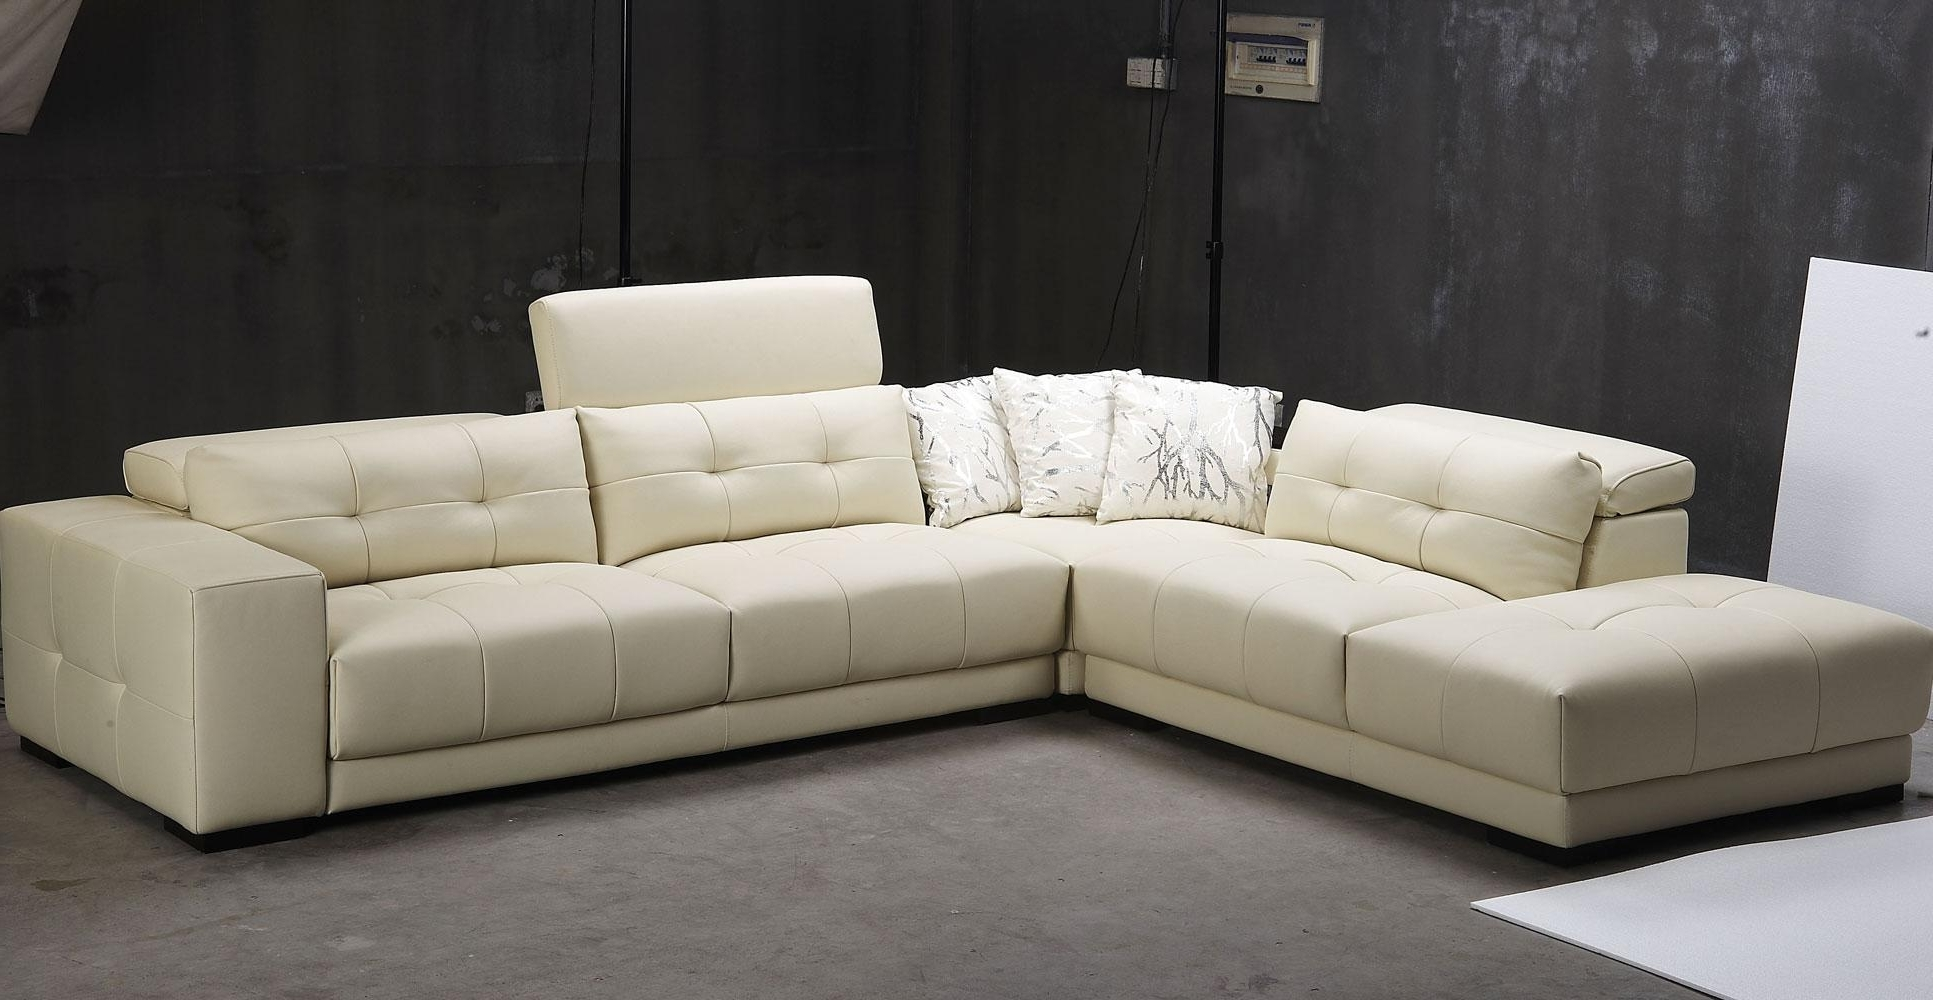 Recent 3 Piece Sectional Sleeper Sofas With Regard To Best Modern 3 Piece White Leather Sectional Sleeper Sofa With (View 7 of 15)